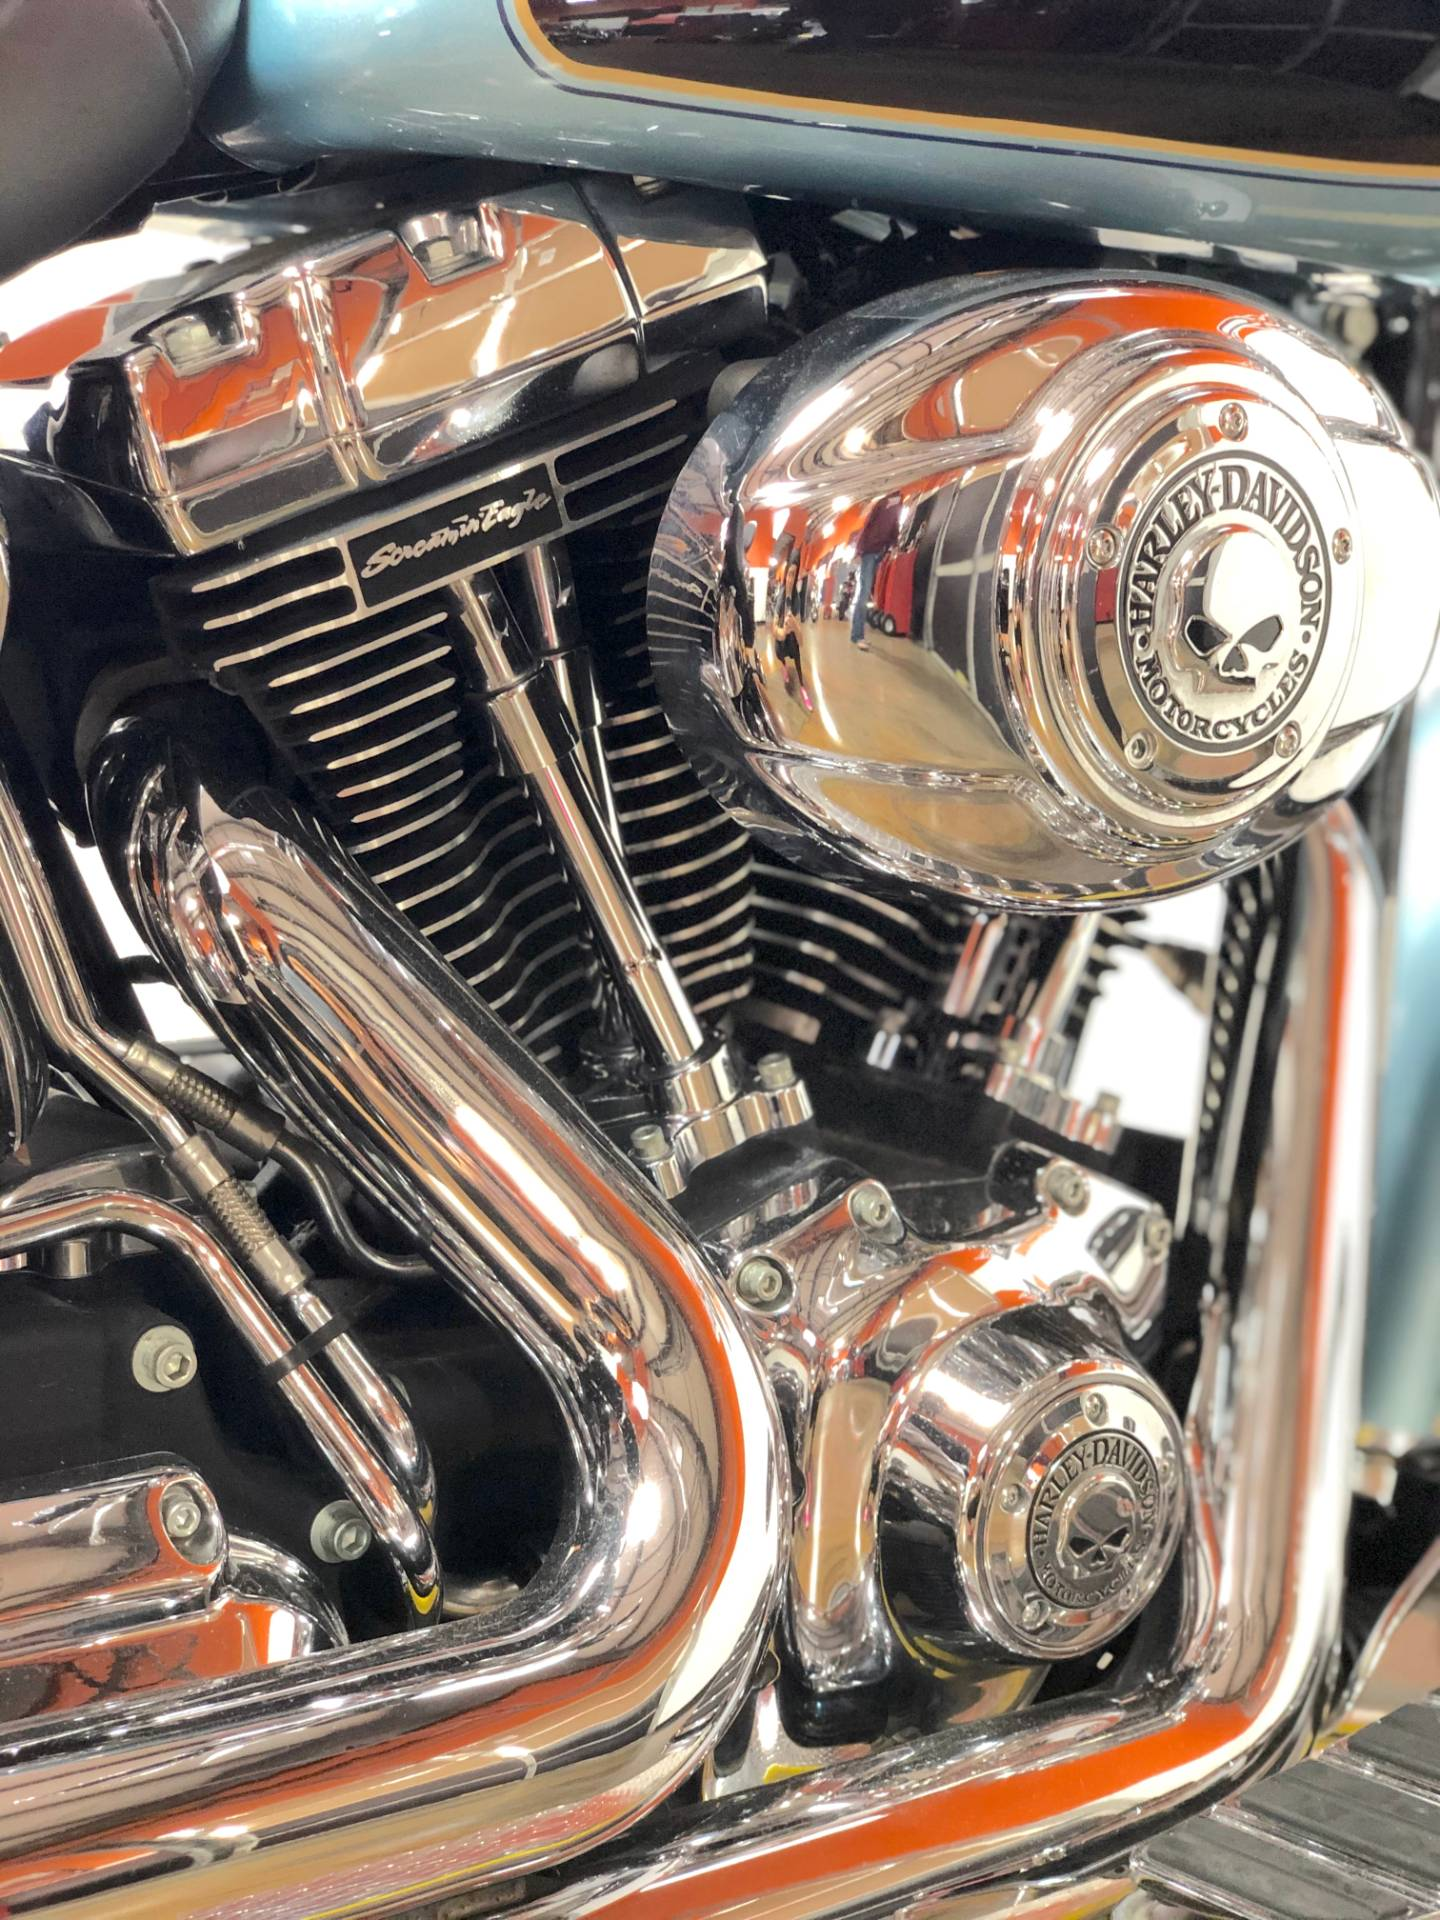 2007 Harley-Davidson Heritage Softail® Classic in Marion, Illinois - Photo 5